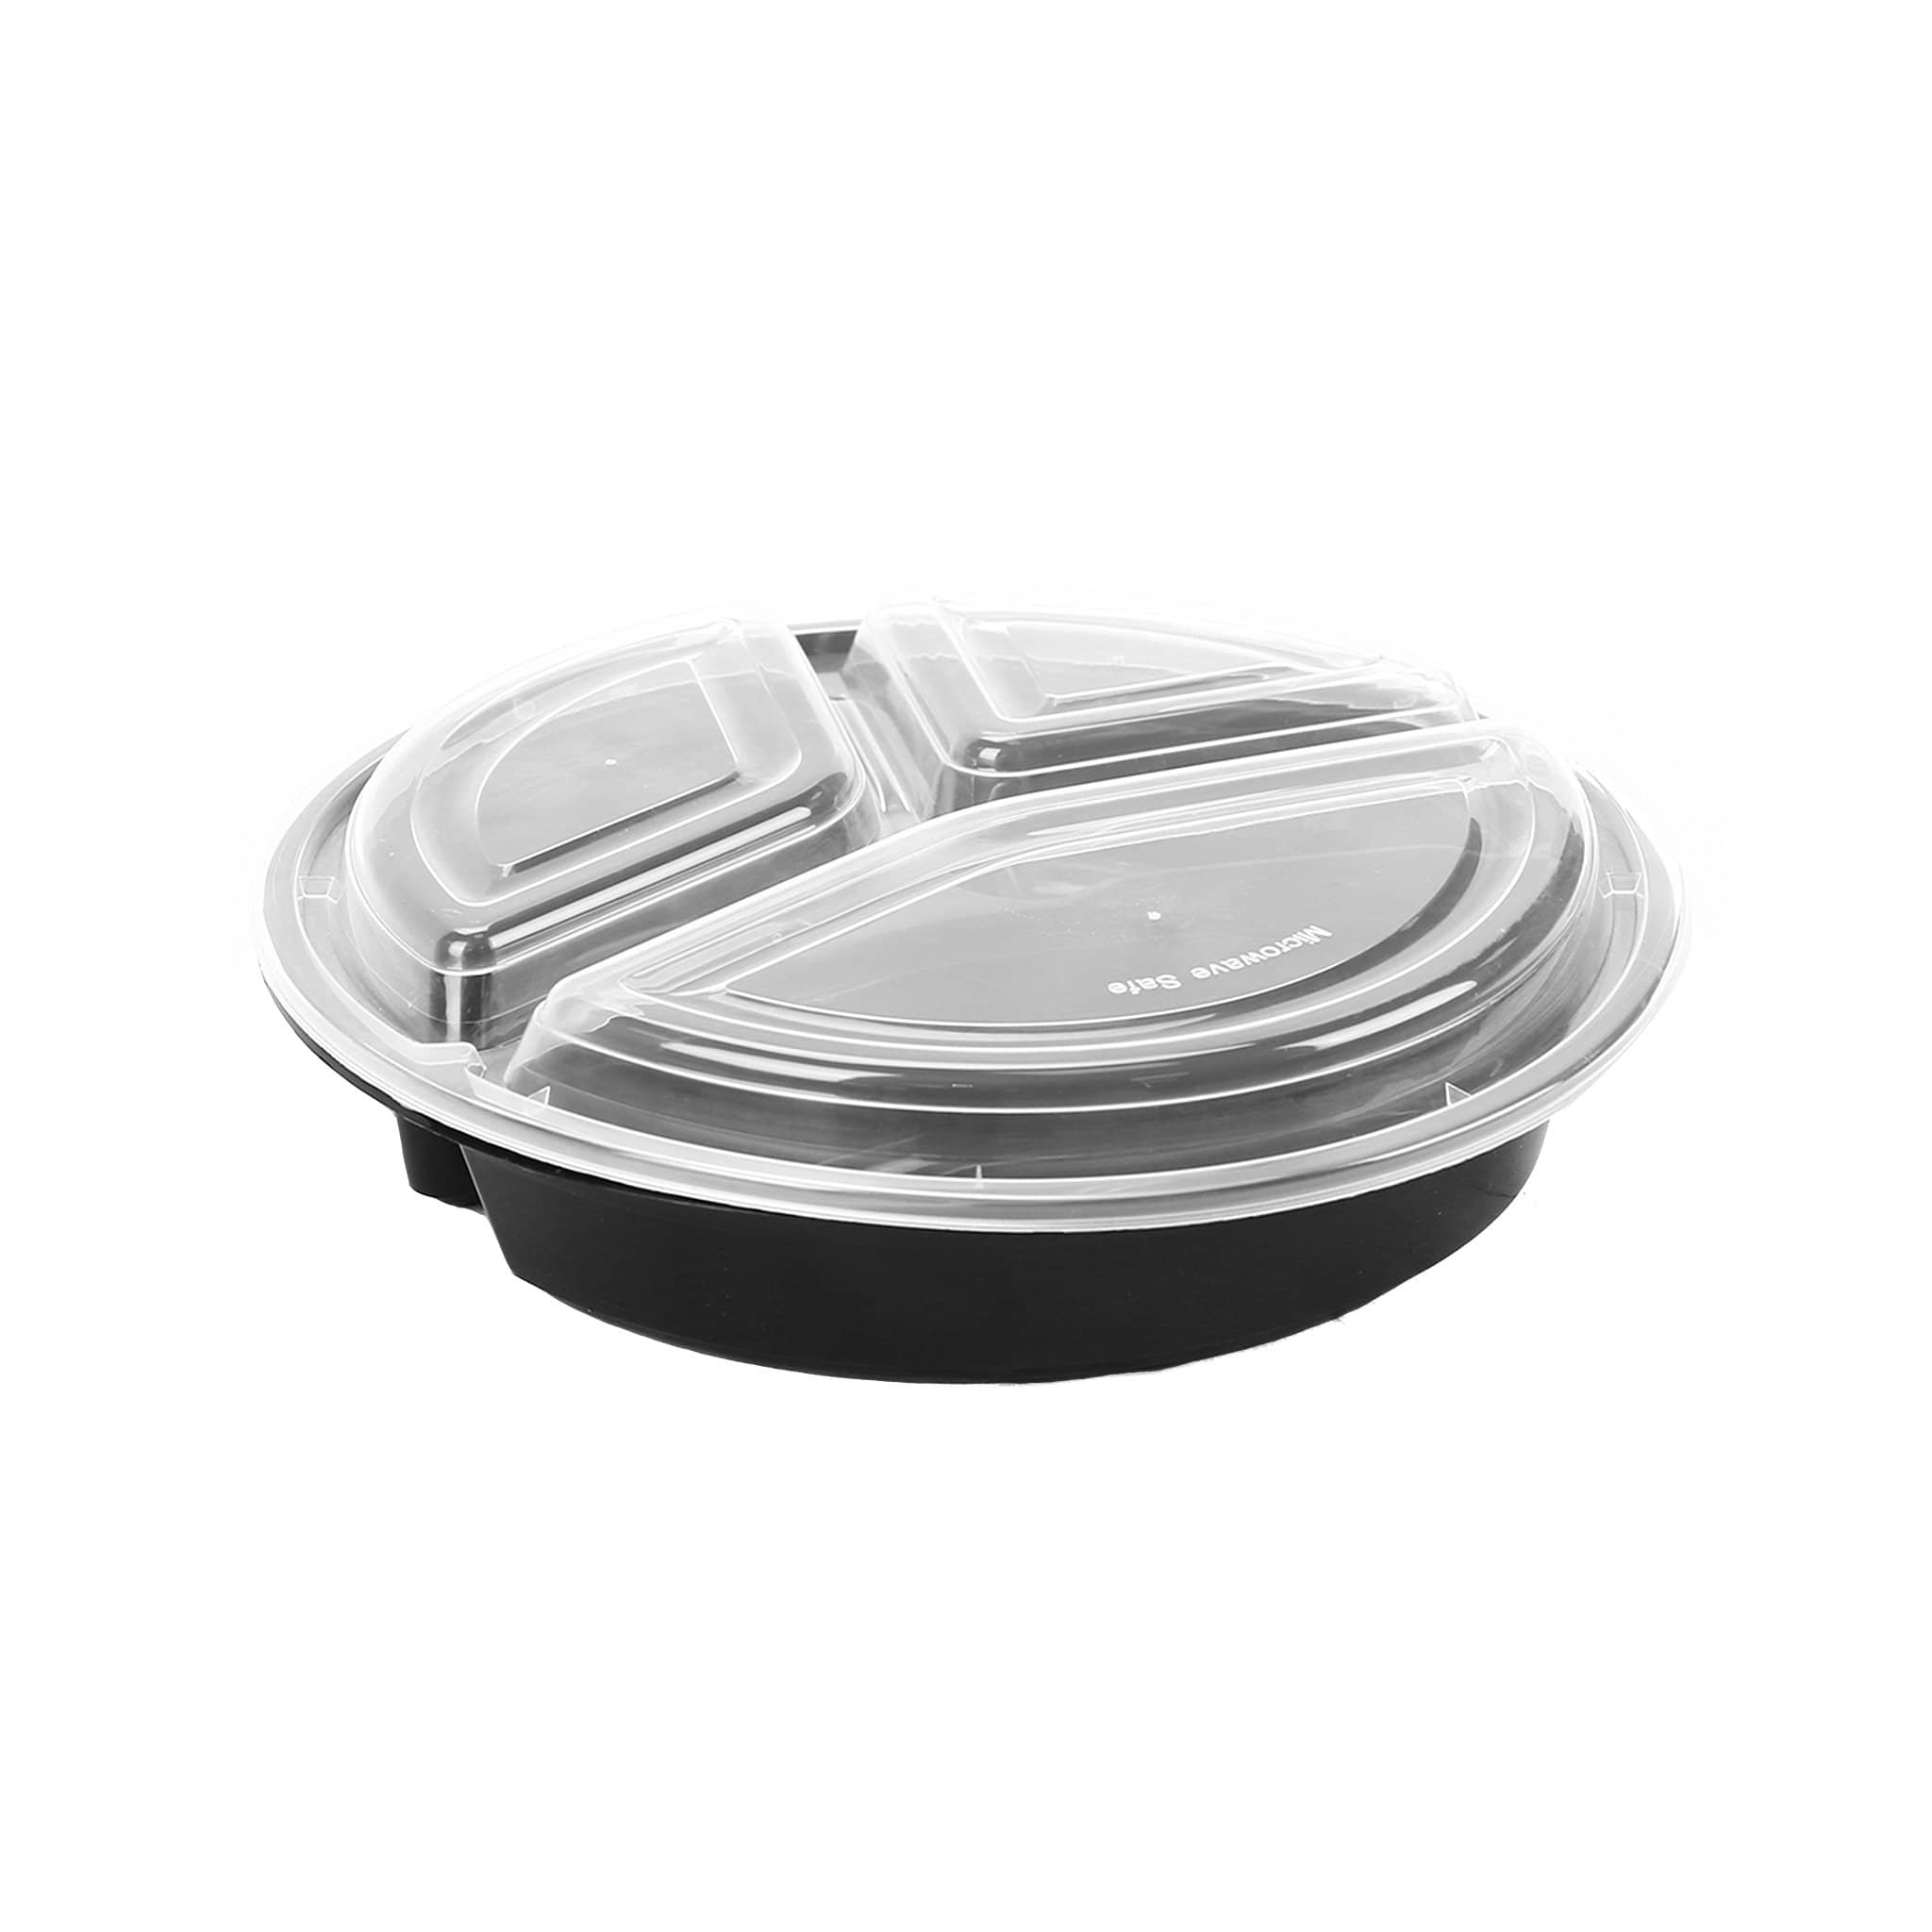 Hotpack | Black Base Round 3-Compartment Container 48 oz with Lids  |150 Pieces